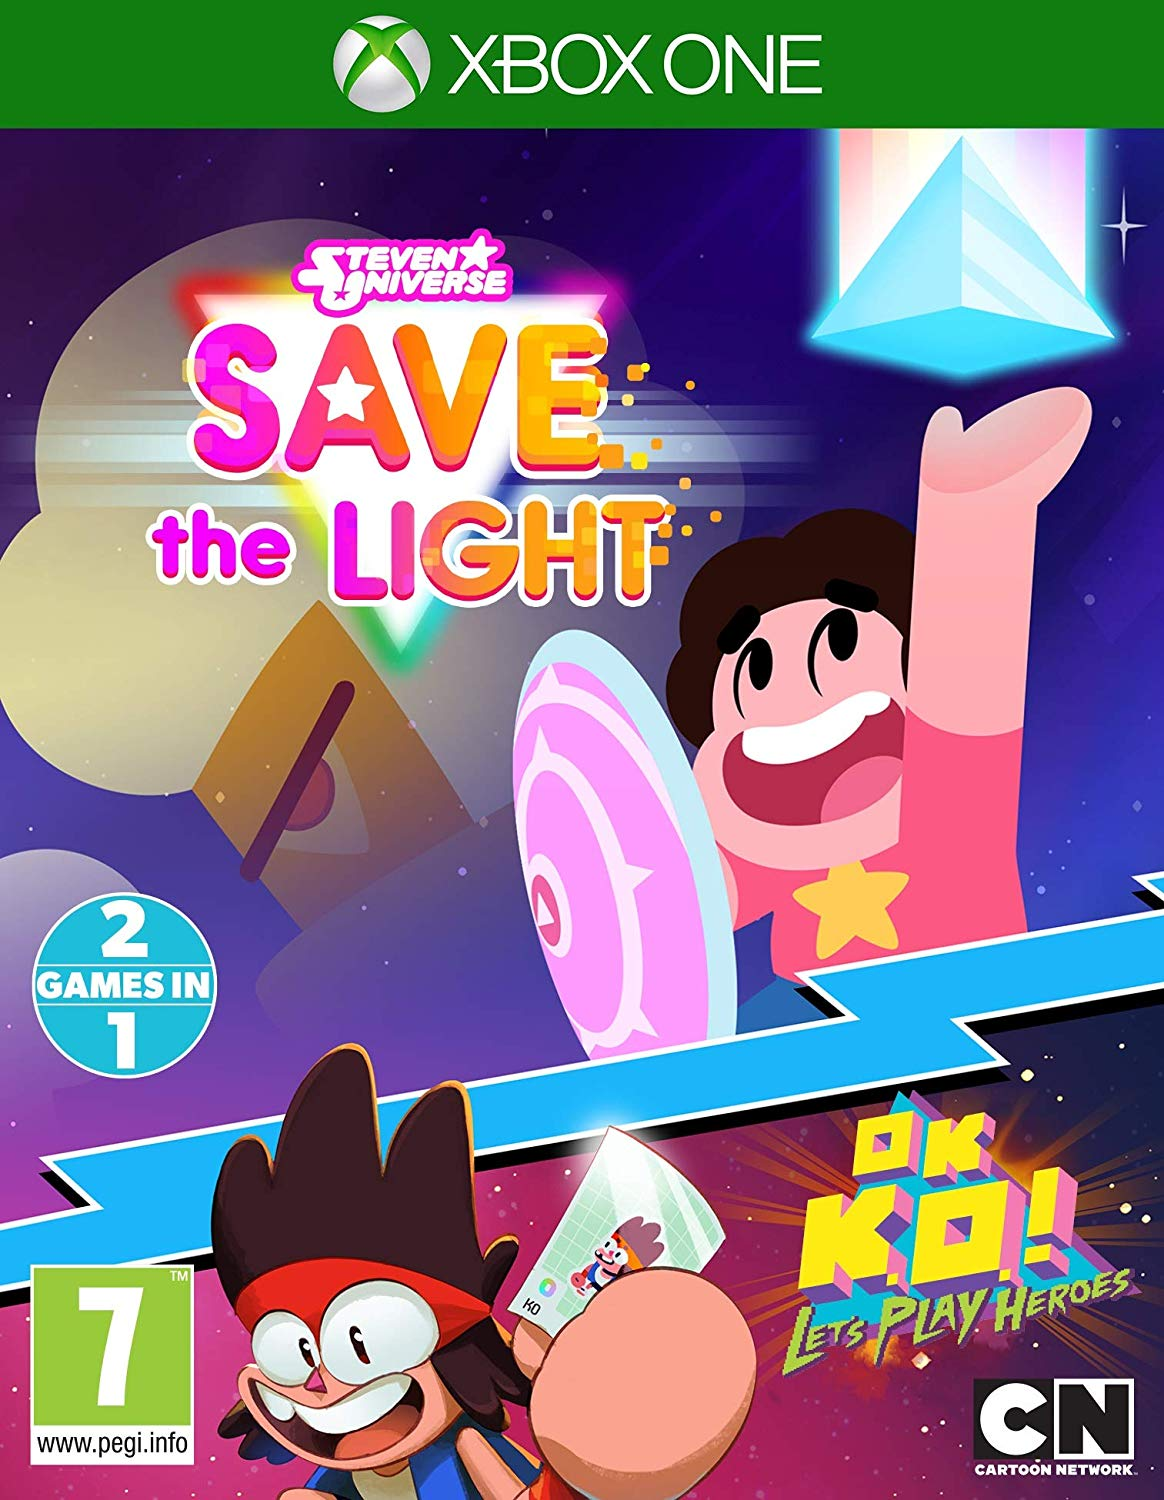 Steven Universe Save The Light And OK K.O.! Lets Play Heroes Xbox One